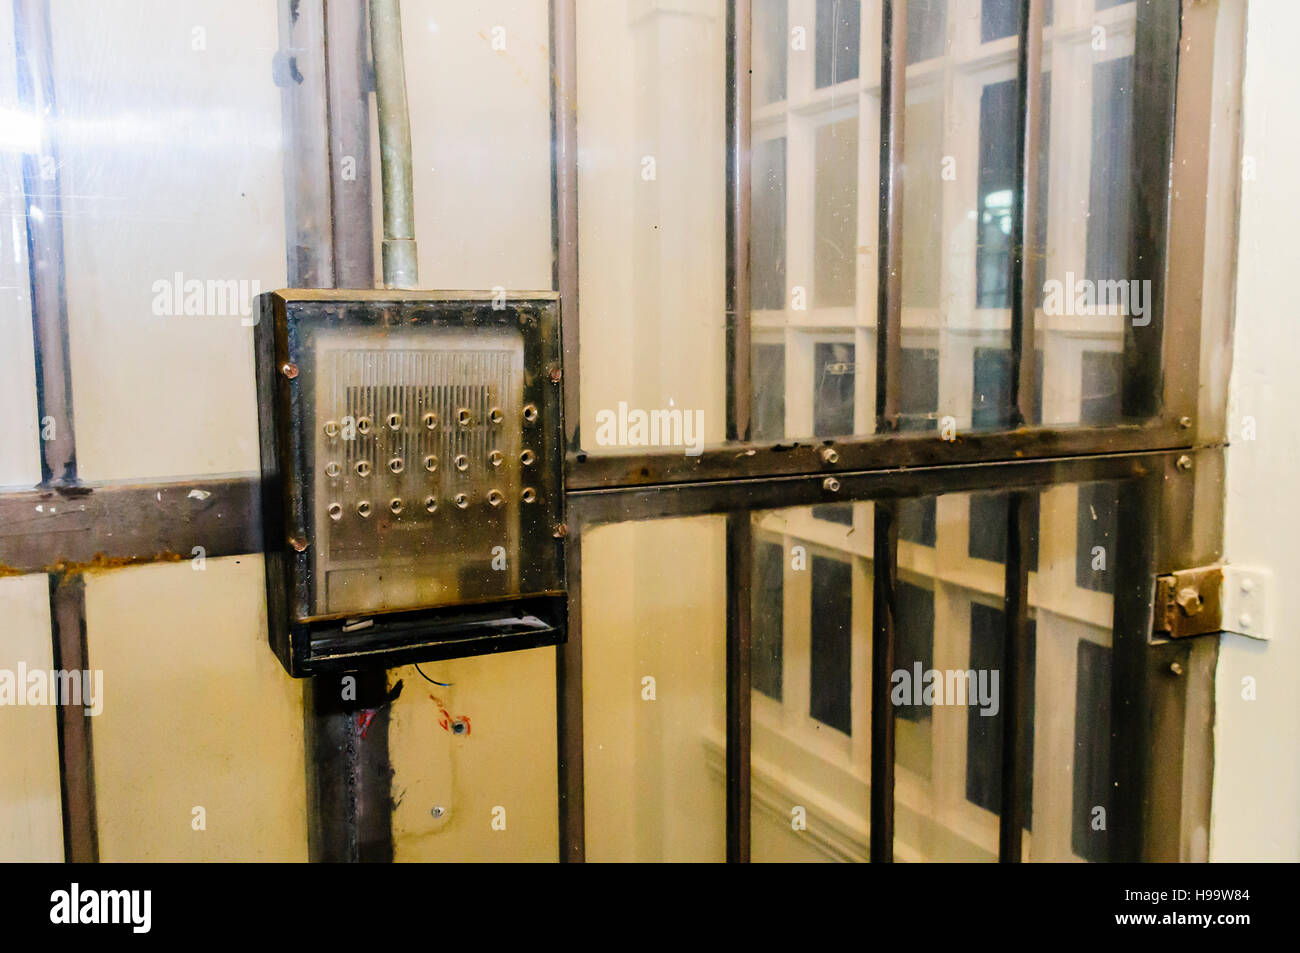 Intercom and steel barred doors in a prison, covered with toughened perspex for protection. - Stock Image